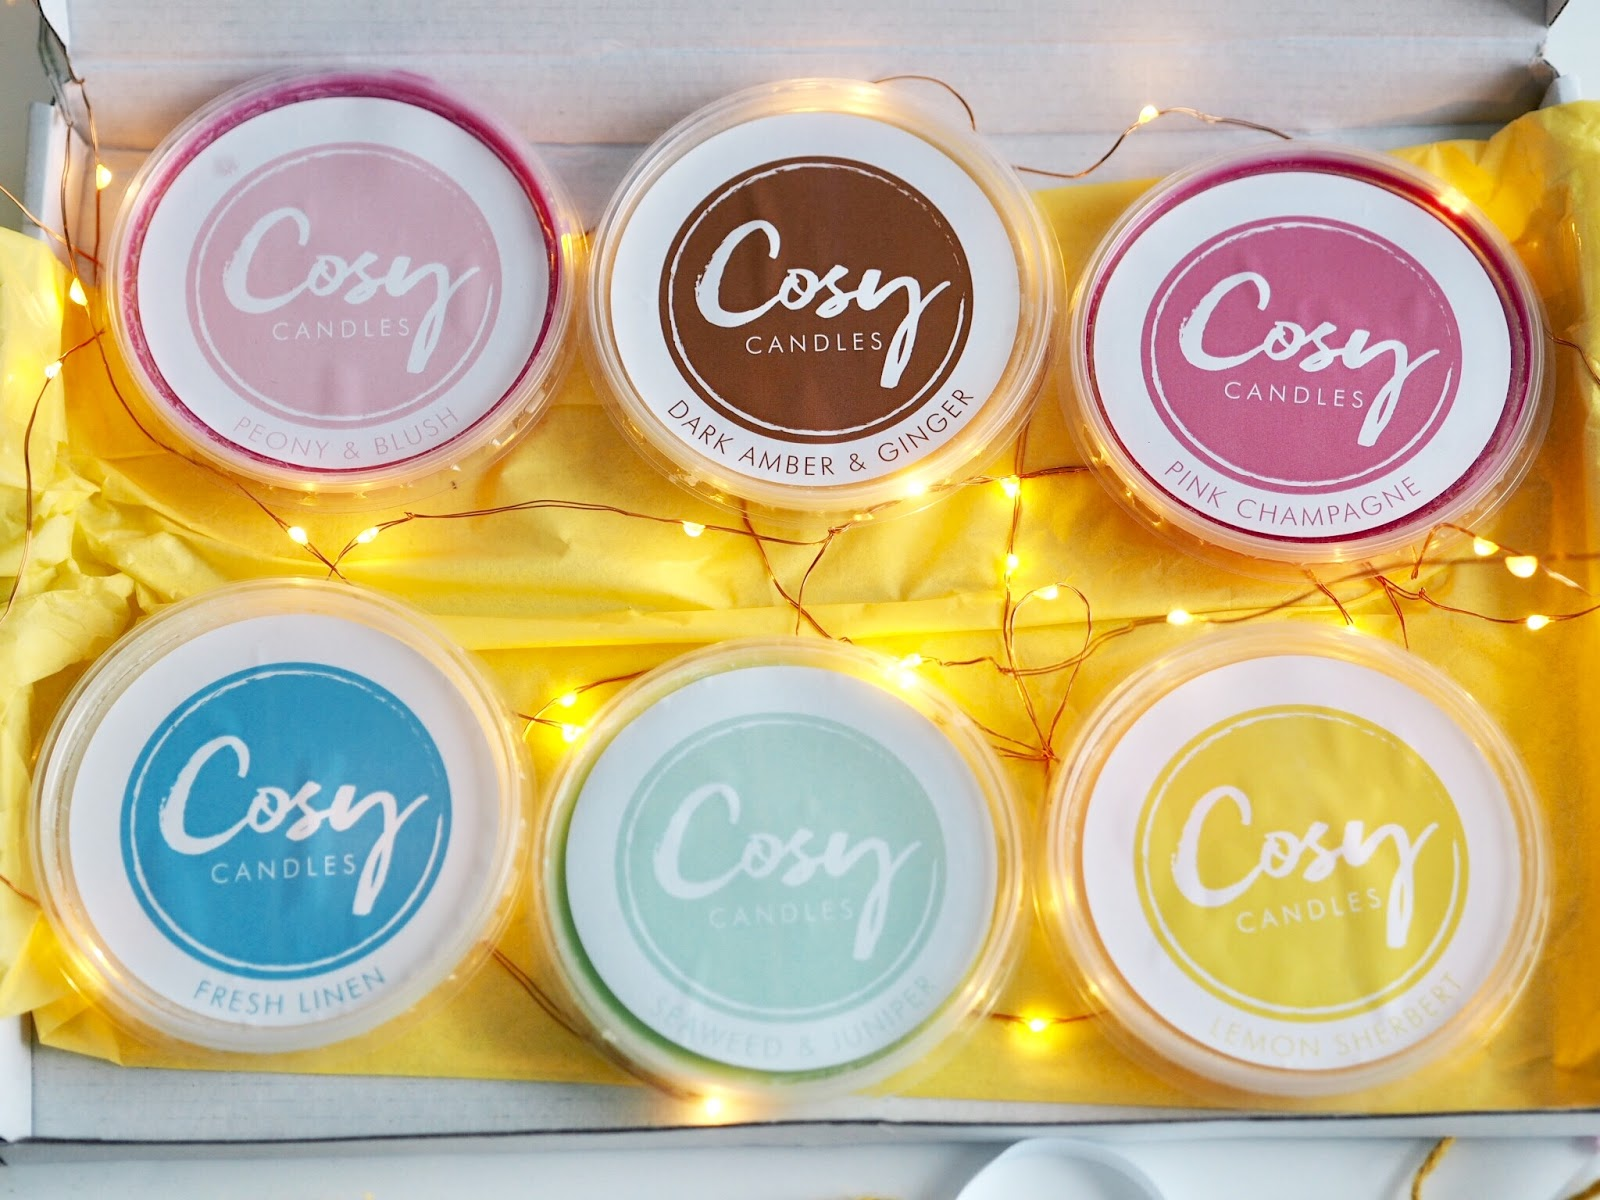 Cosy Candles Are A Subscription Box Service, Delivering The Highest